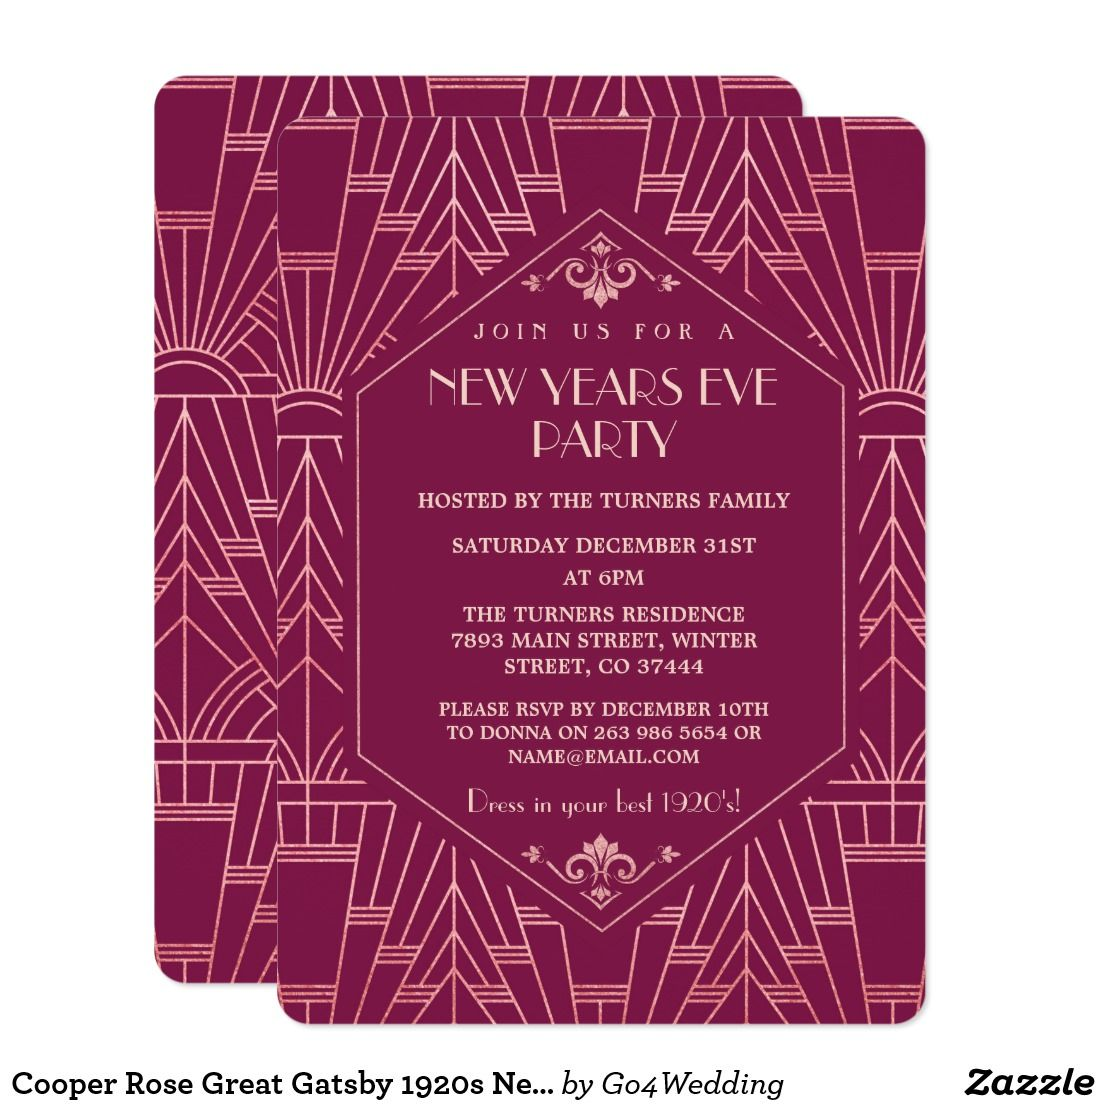 Cooper Rose Great Gatsby 1920s New Year Party Invitation